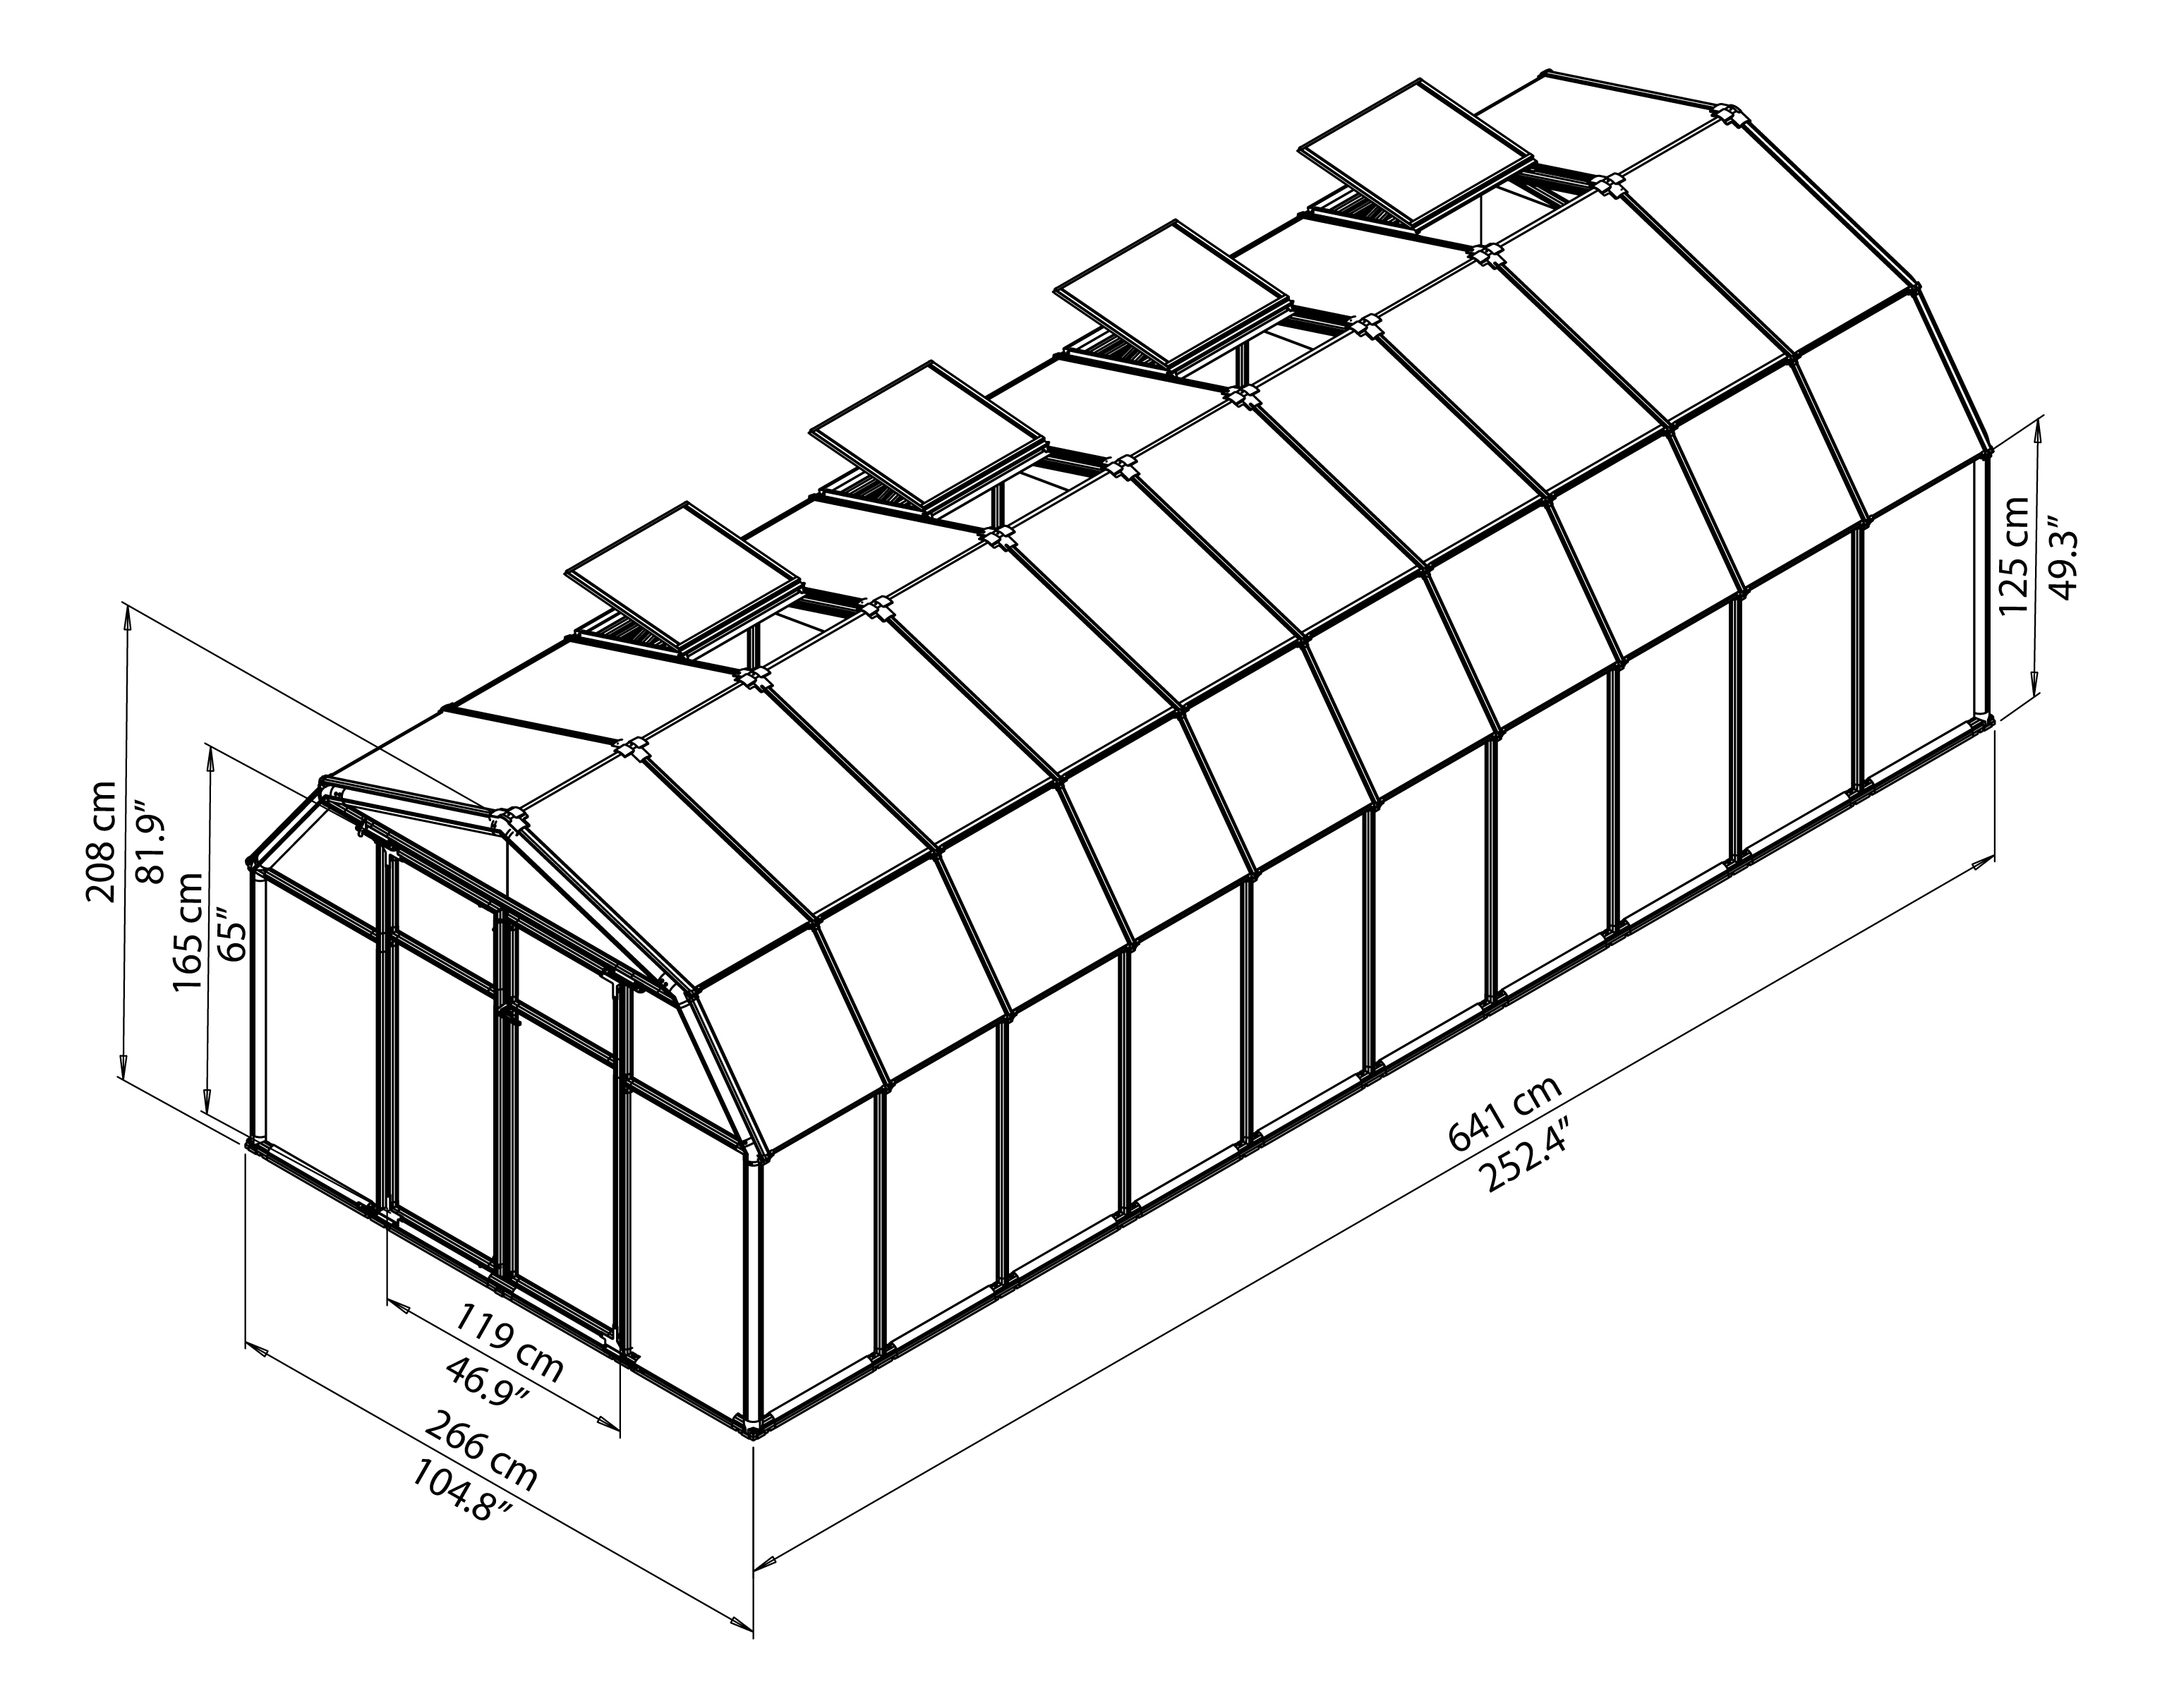 rion-greenhouses-hobbygardener-8x20-drawing-isoview.jpg